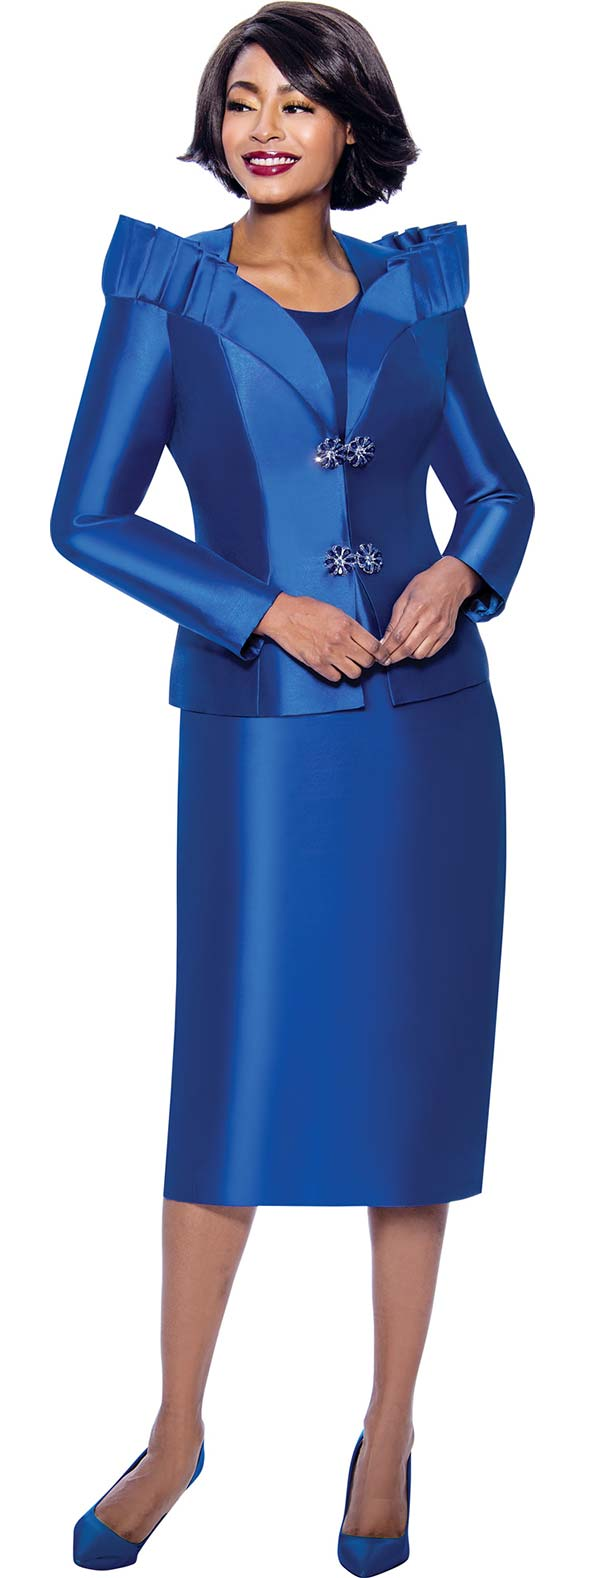 Terramina 7811-Royal - Womens Church Suit Featuring Pleated Stand-Up Over Shoulder Collar